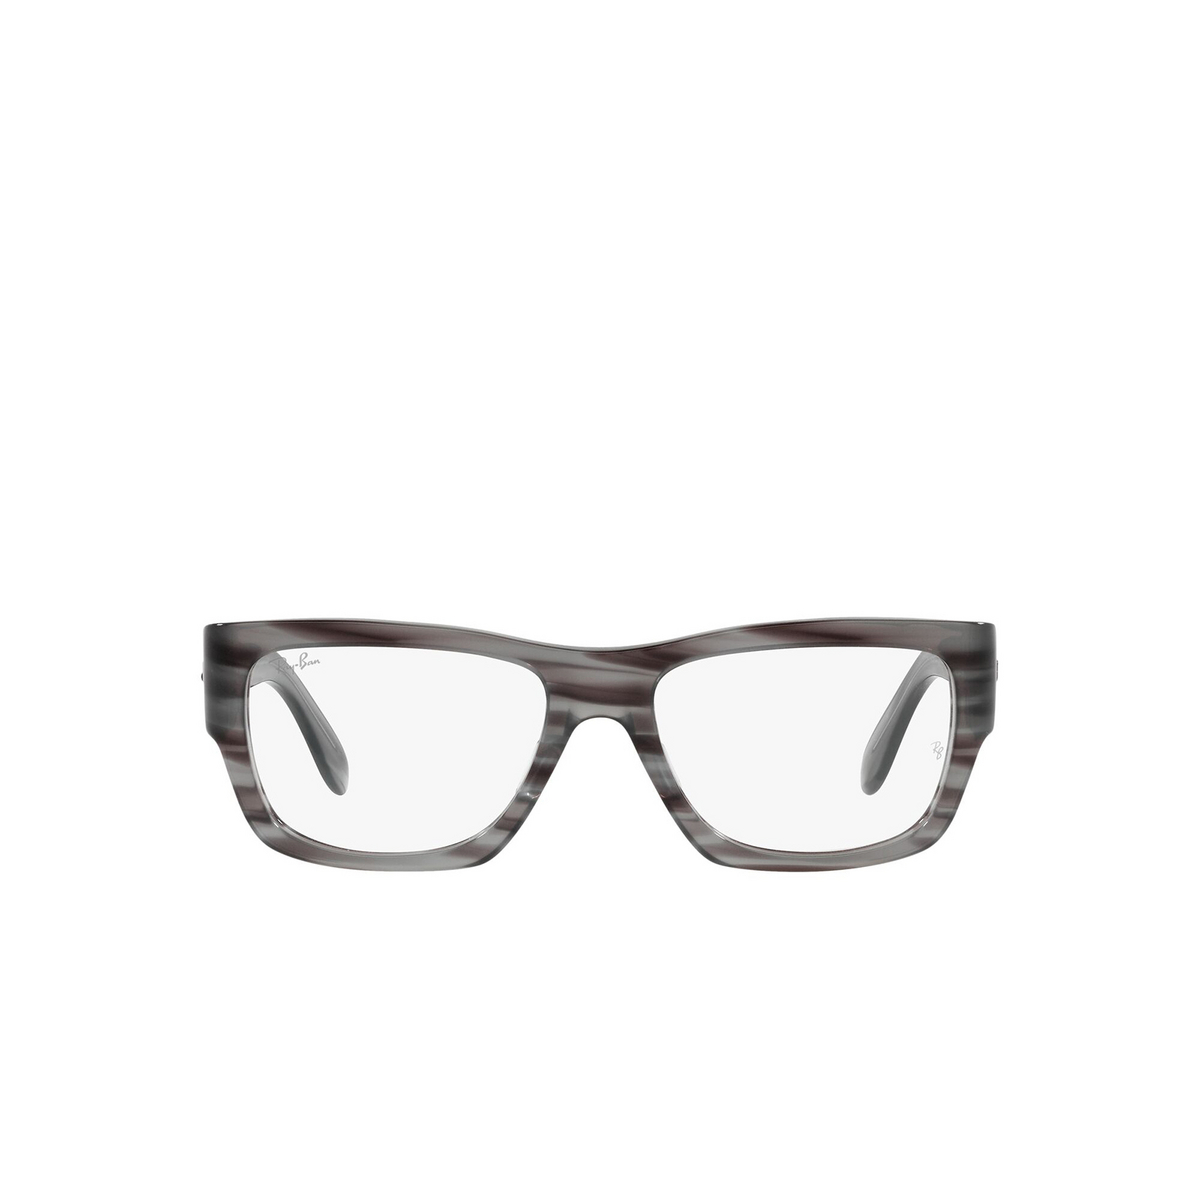 Ray-Ban® Square Eyeglasses: Nomad Wayfarer RX5487 color Striped Grey 8055 - front view.